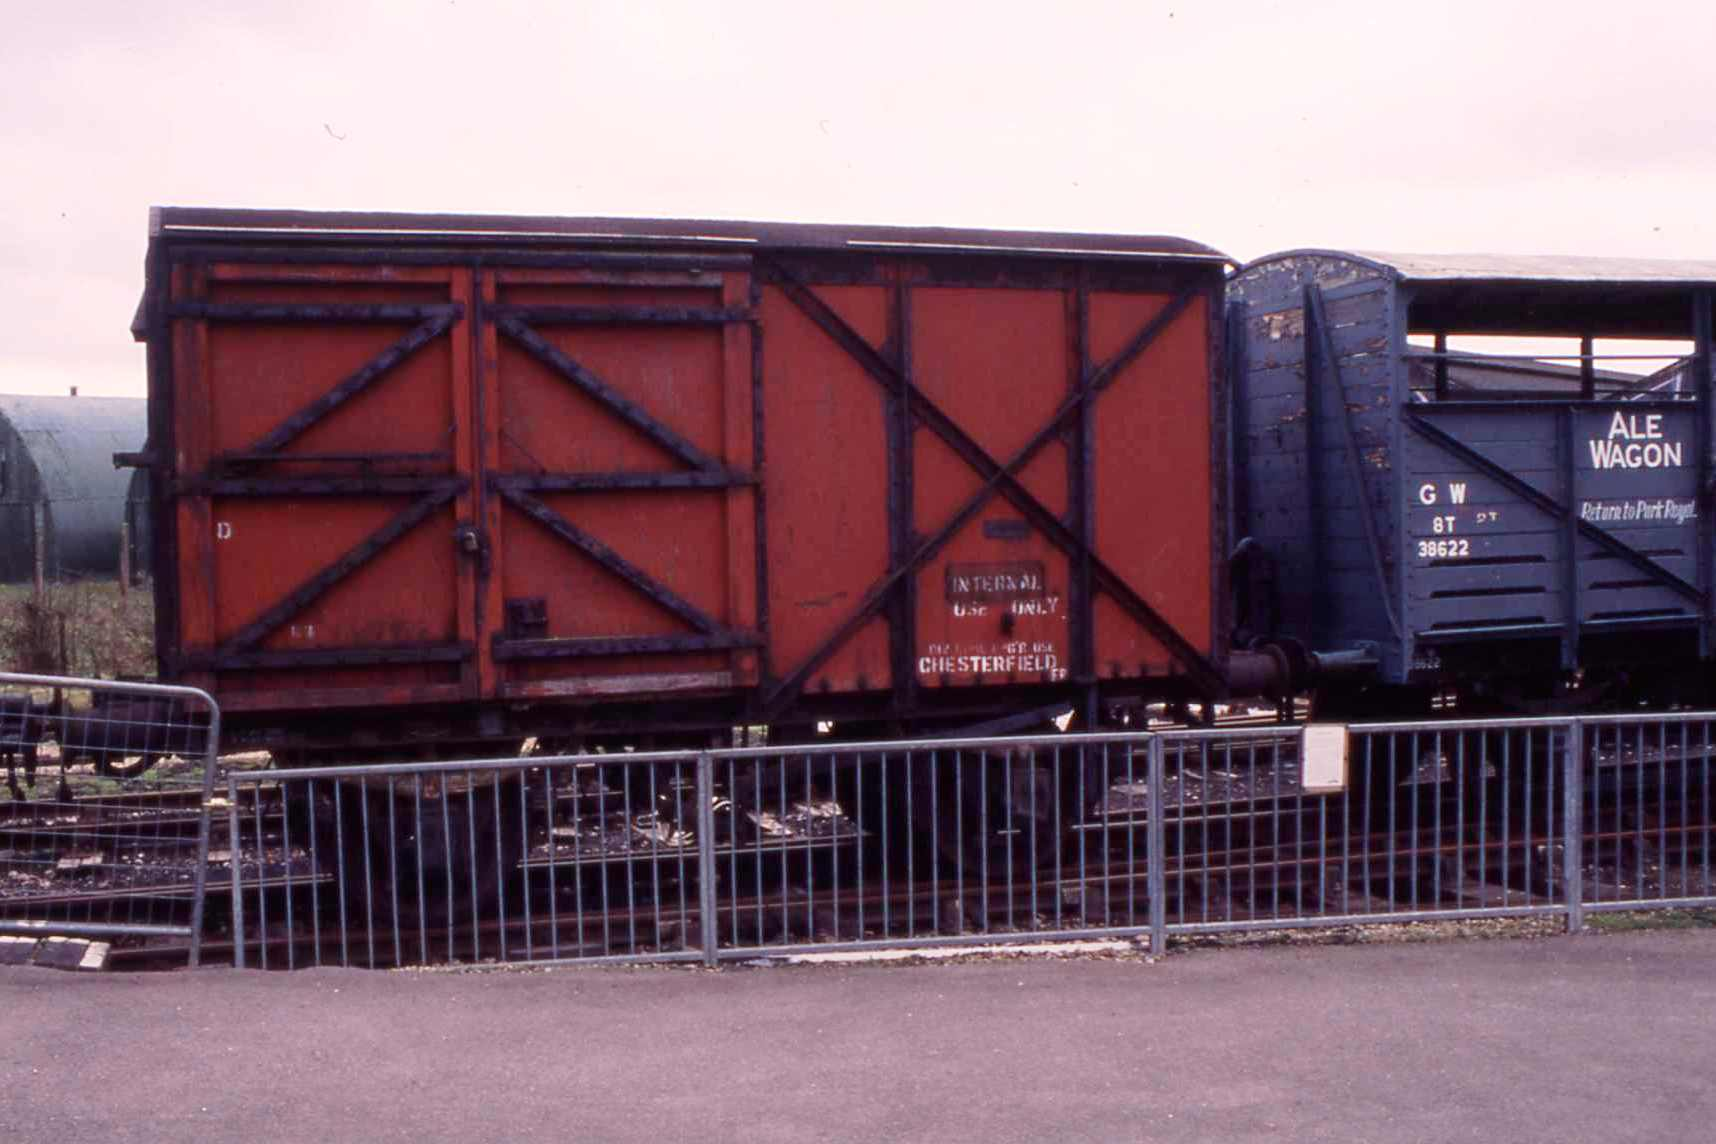 DB778992 in Down Yard at Quainton